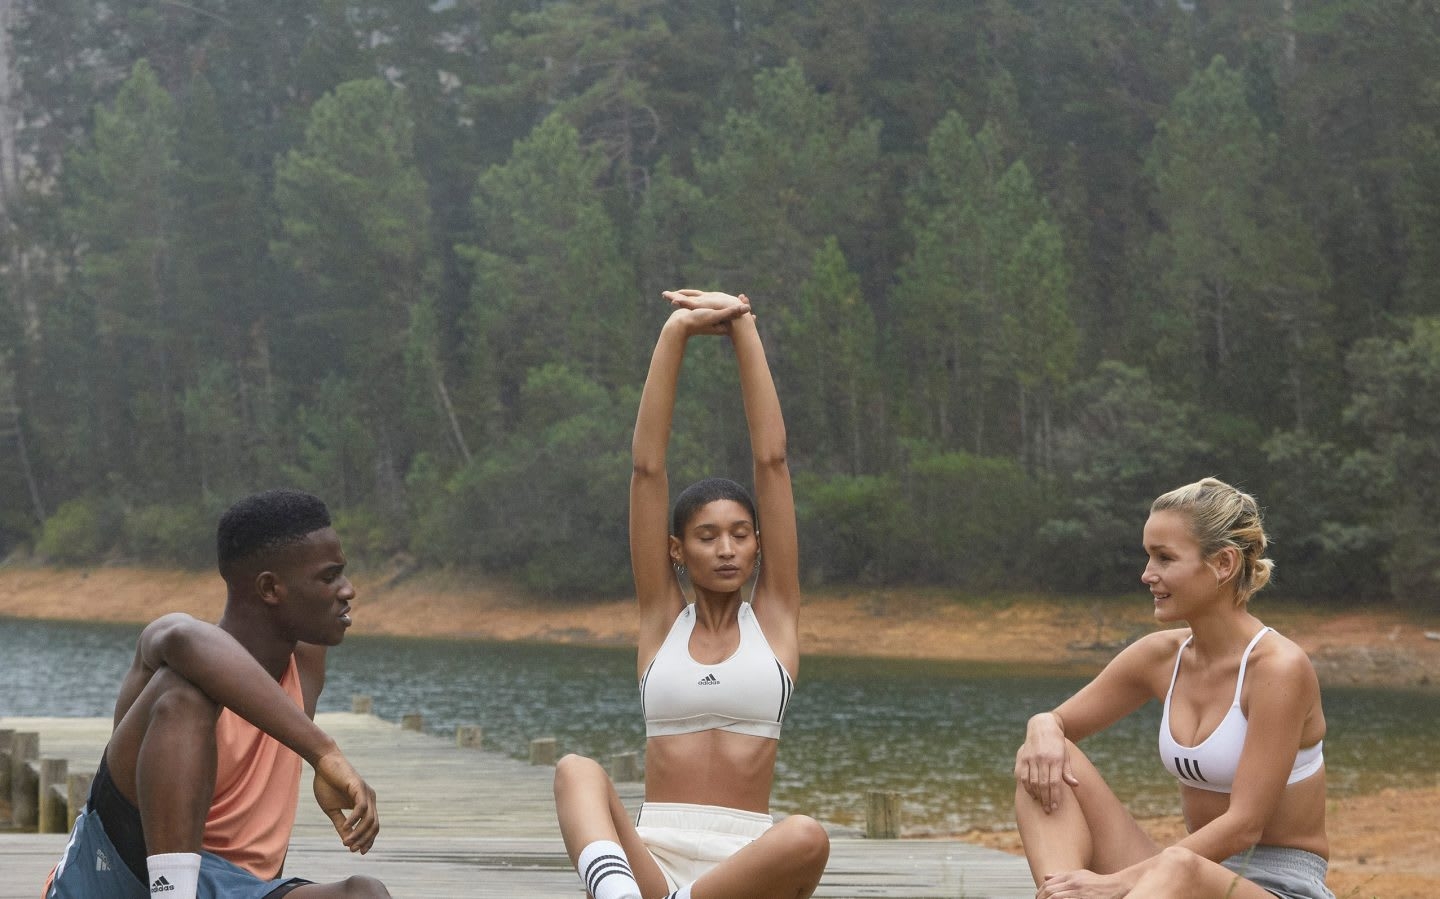 Sport group sitting on a river while talking and stretching, nature, sport, sustainability, adidas, allbirds, GamePlanA